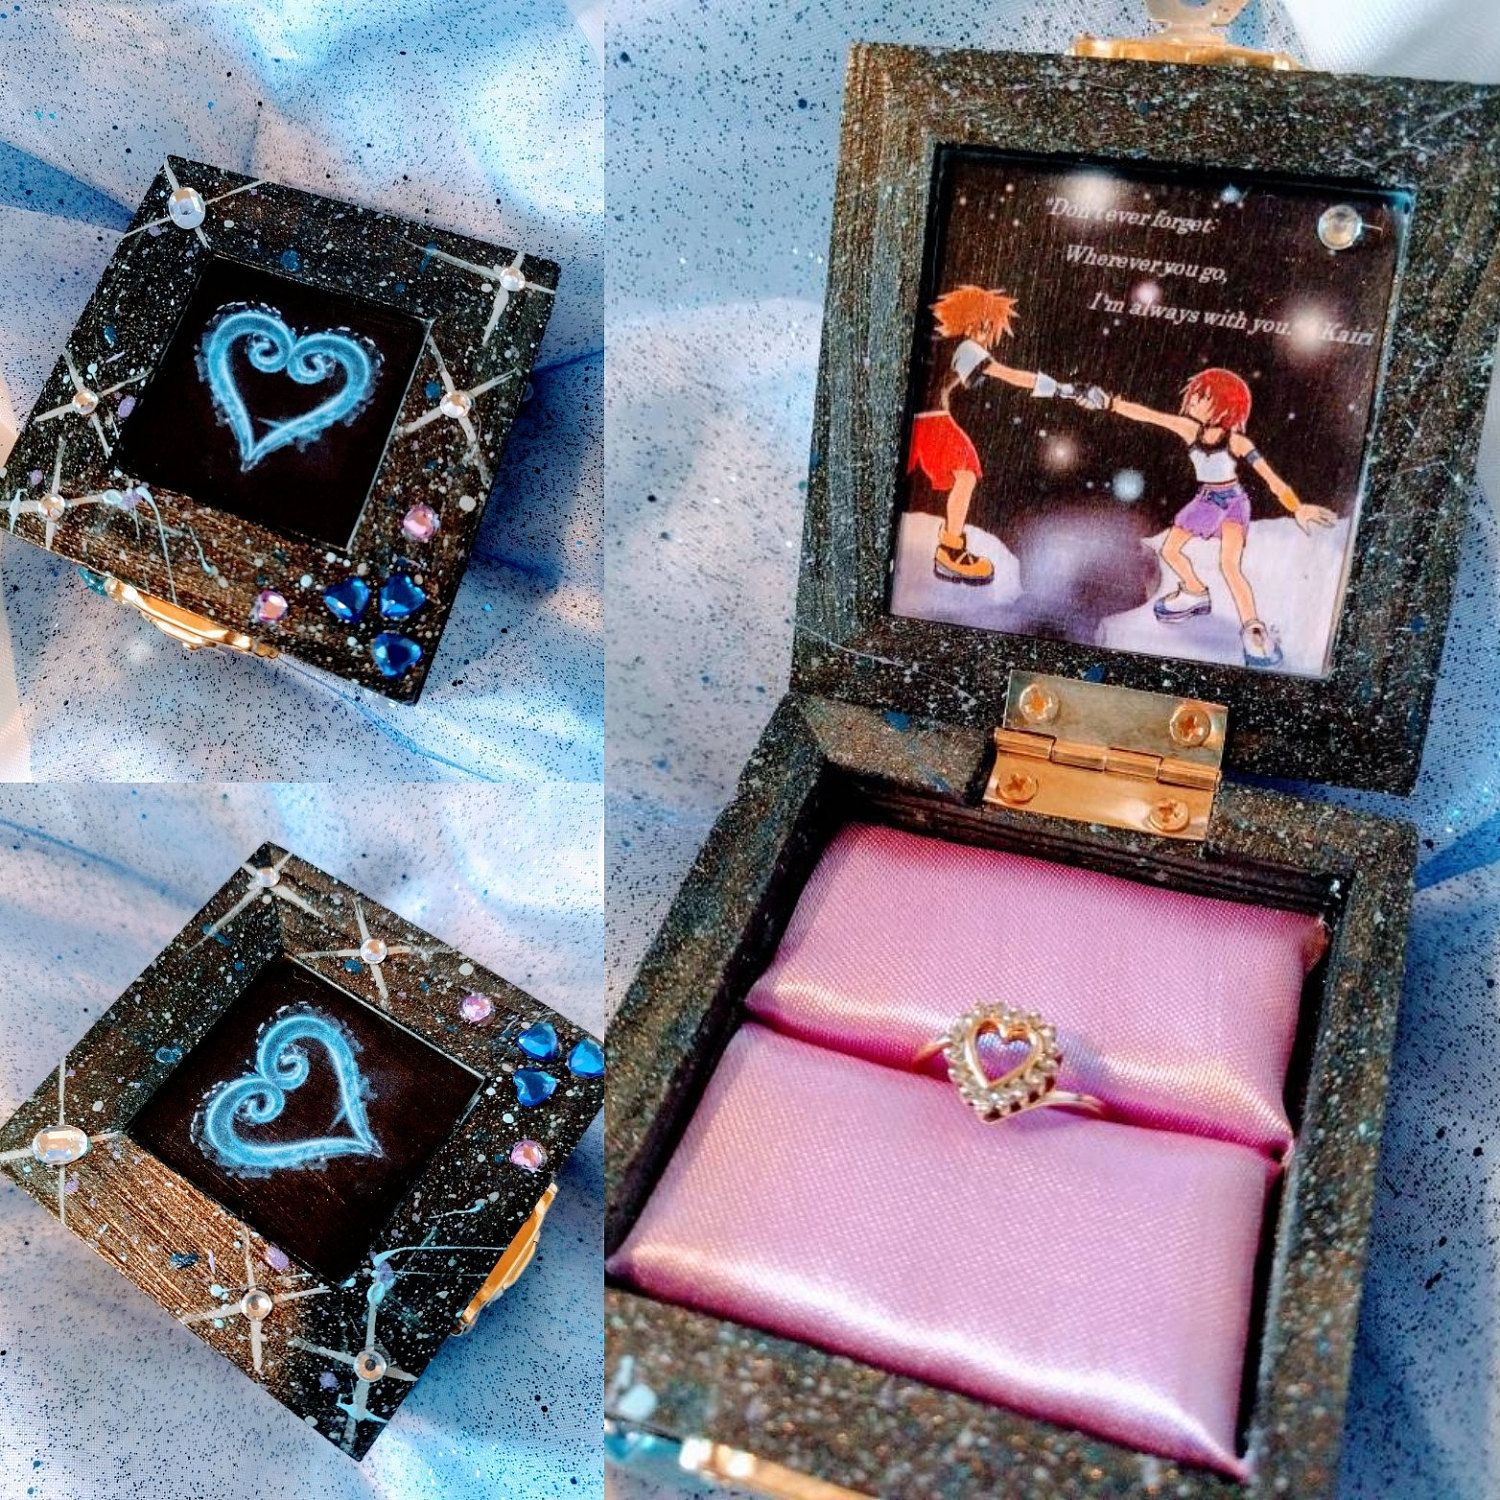 Ring Box Verlobung Kingdom Hearts Inspired Engagement Ring Box W/ Quote